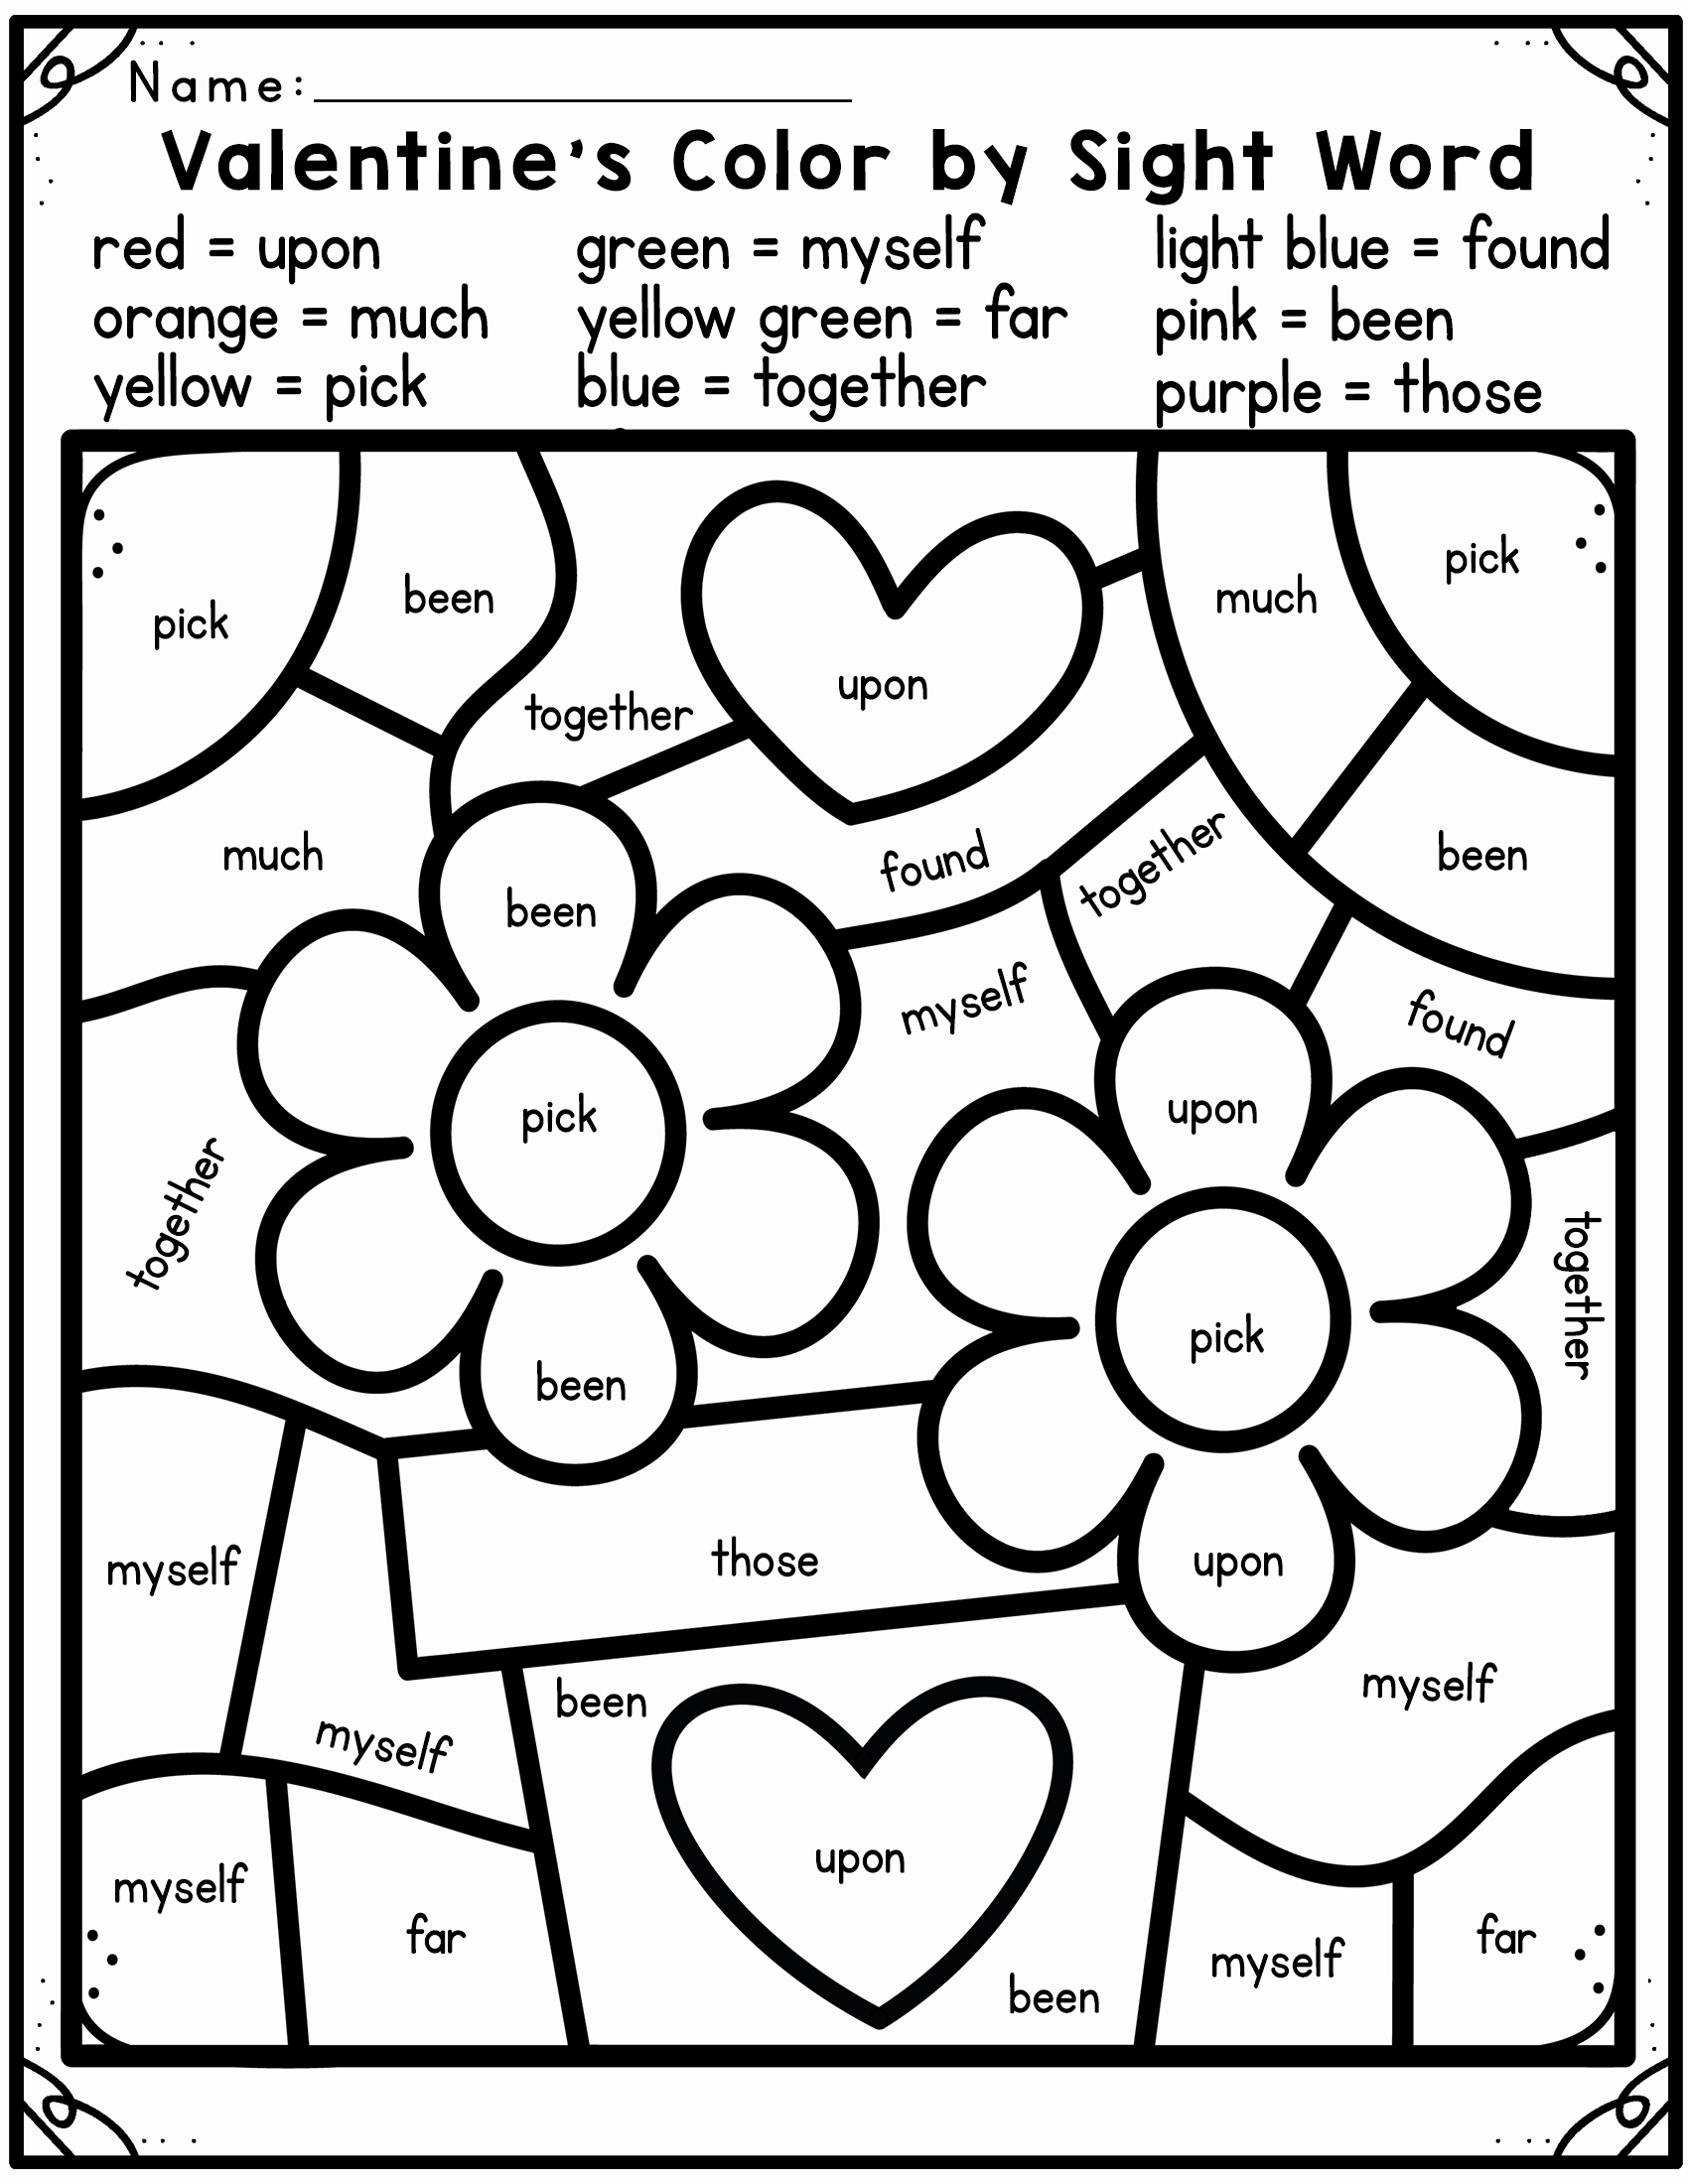 Color Sight Word Worksheets Luxury Valentine S Day Color by Sight Word Madebyteachers